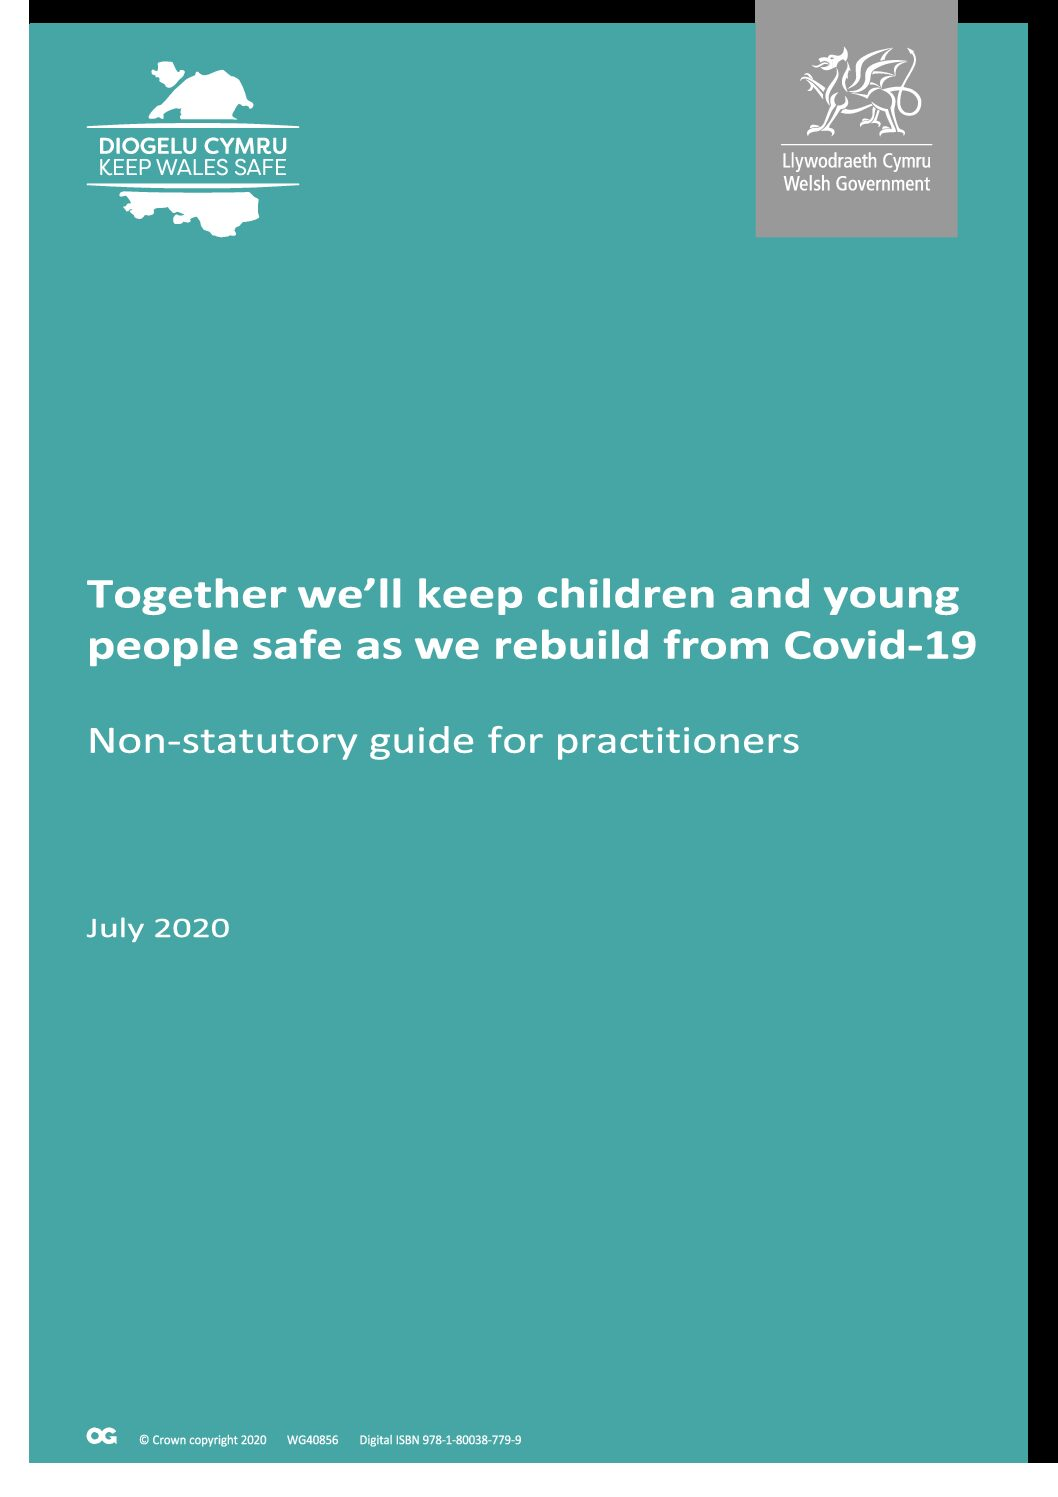 Non-statutory Safeguarding Guide for practitioners working with children